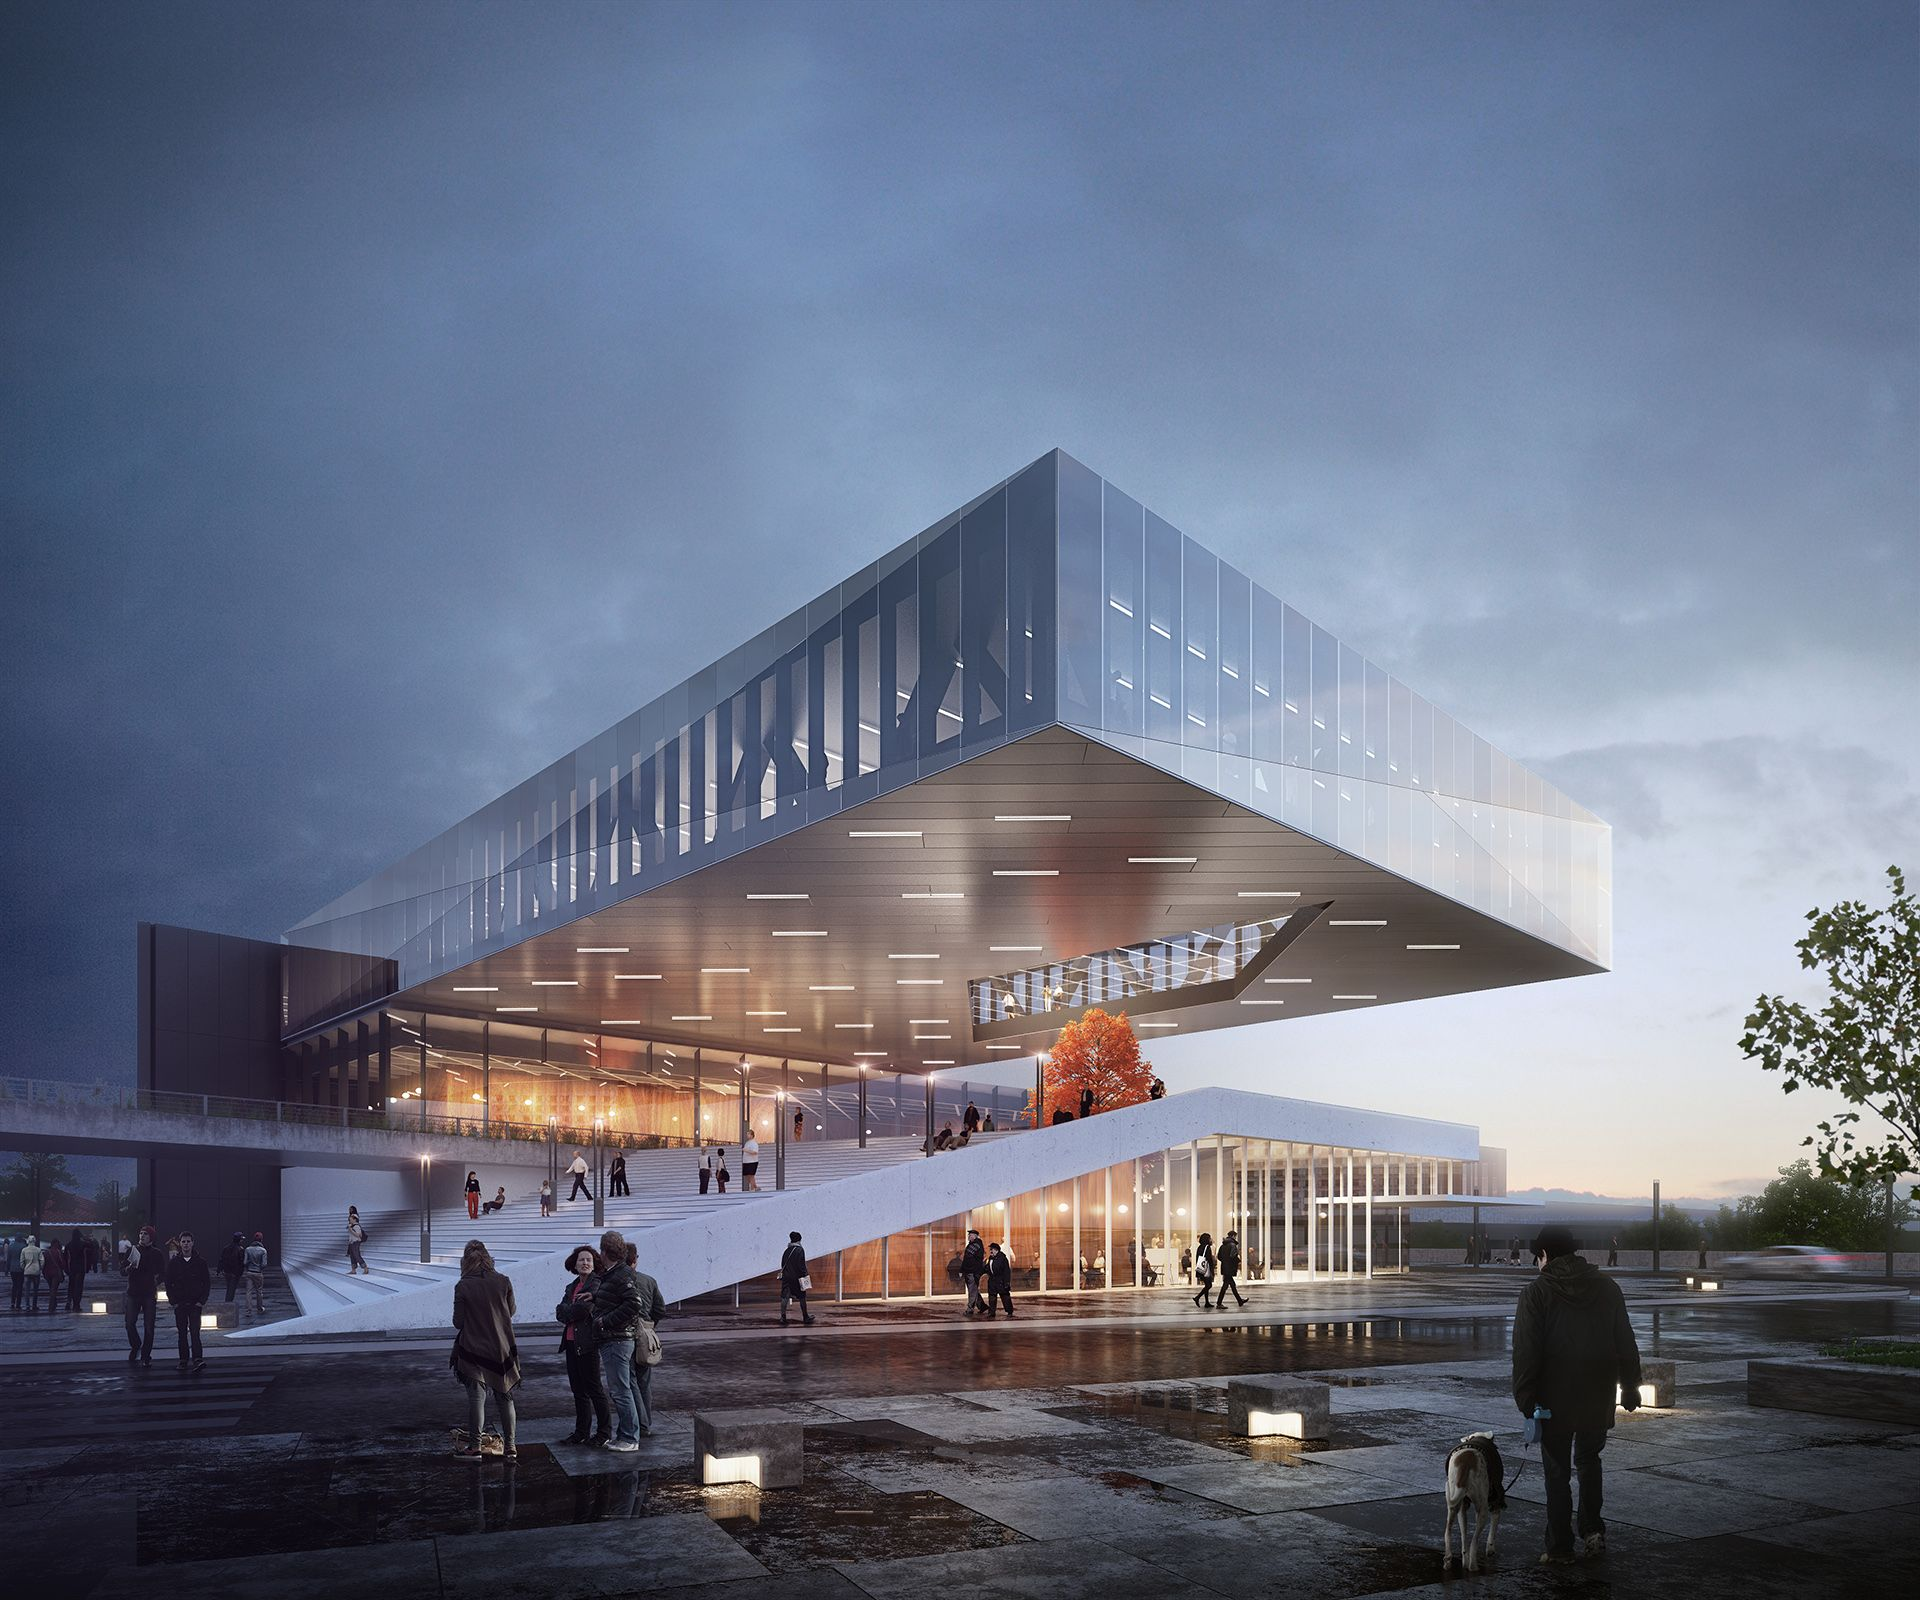 Architektur Rendering Welches Programm Projects Brick Visual Architectural Visualization